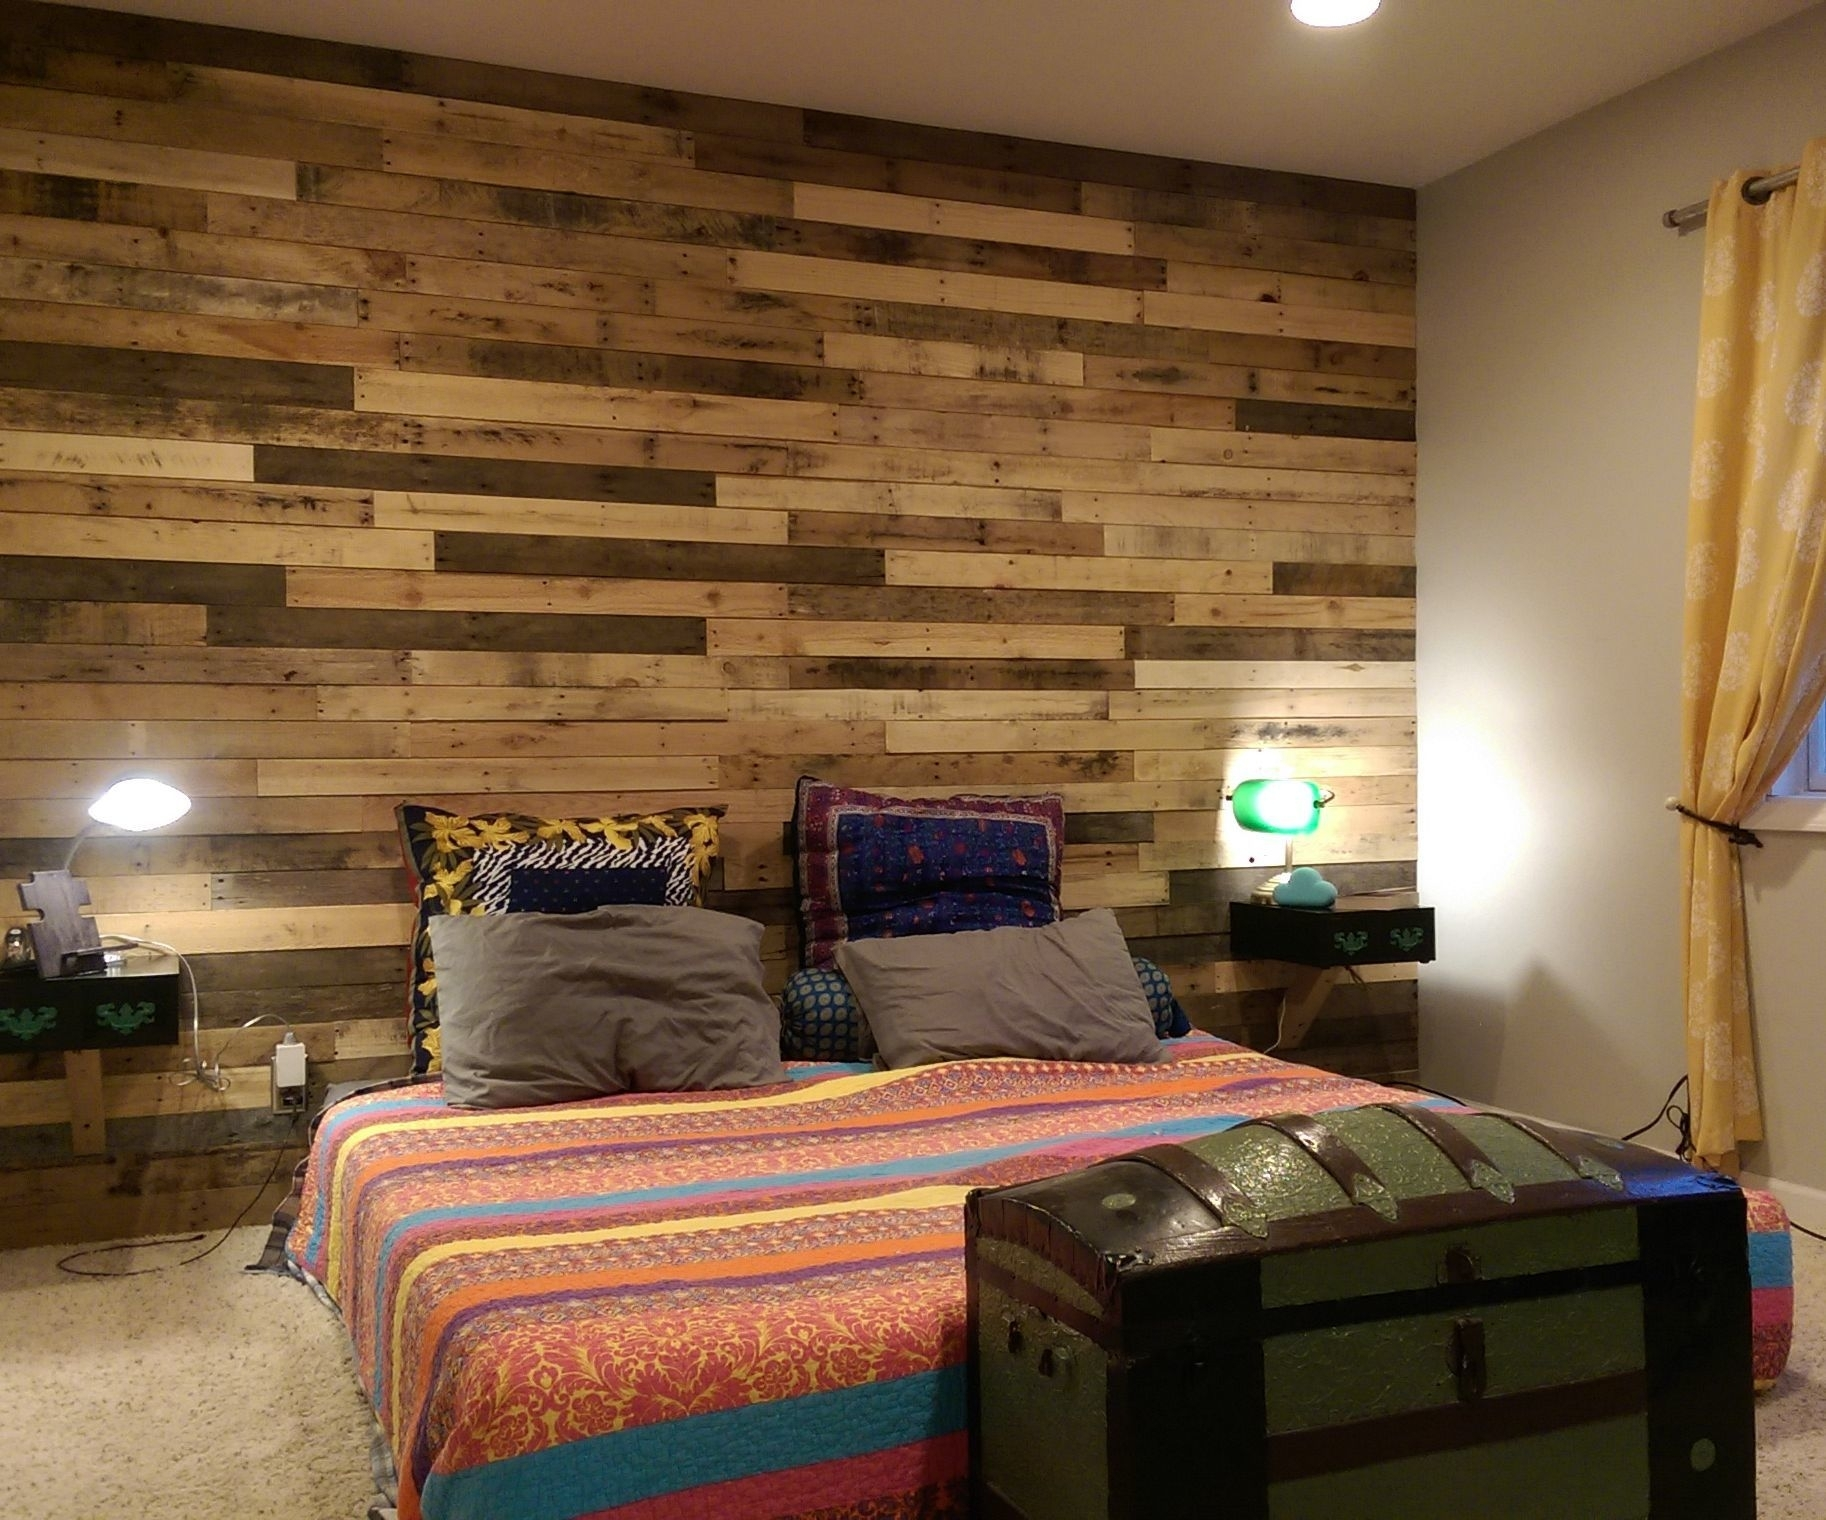 Pallet Accent Wall: 4 Steps (With Pictures) throughout 2017 Wall Accents For Bedroom